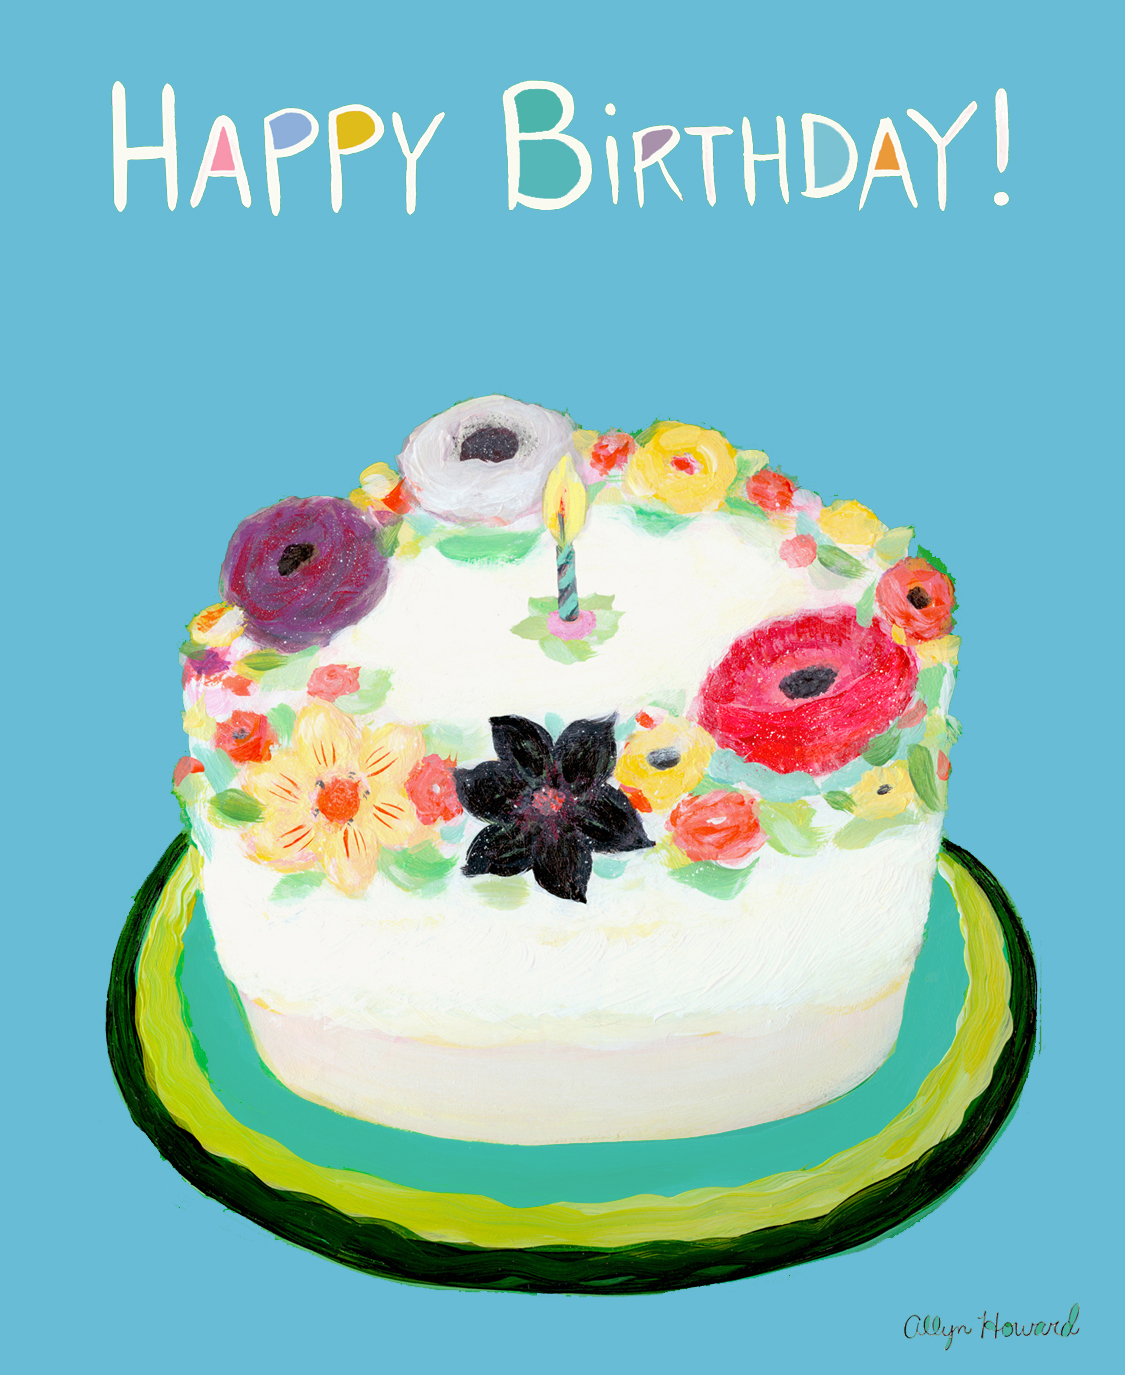 Allyn_Howard_bday-CAKE-blue_card.jpg